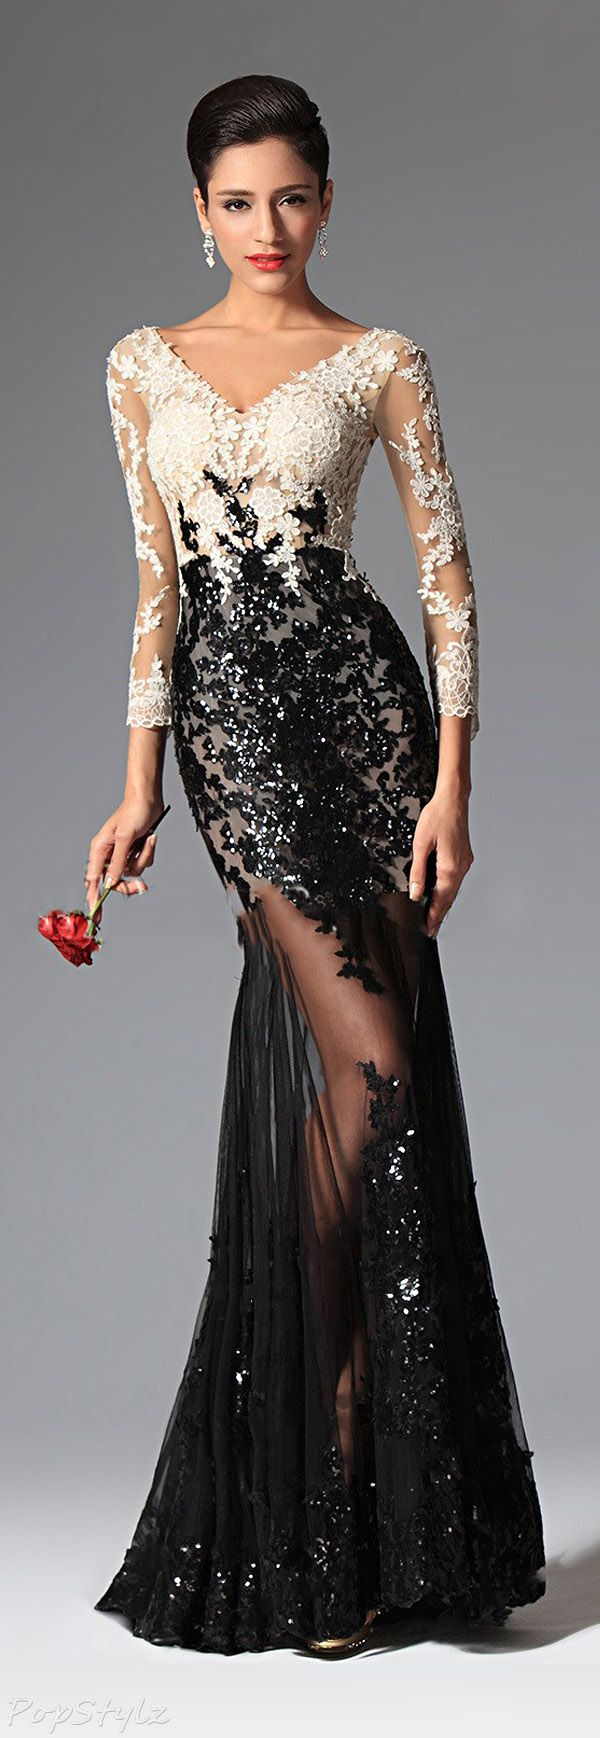 eDressit 02149100 Sequin Tulle & Lace Sleeves Evening Gown http://thepageantplanet.com/category/pageant-wardrobe/